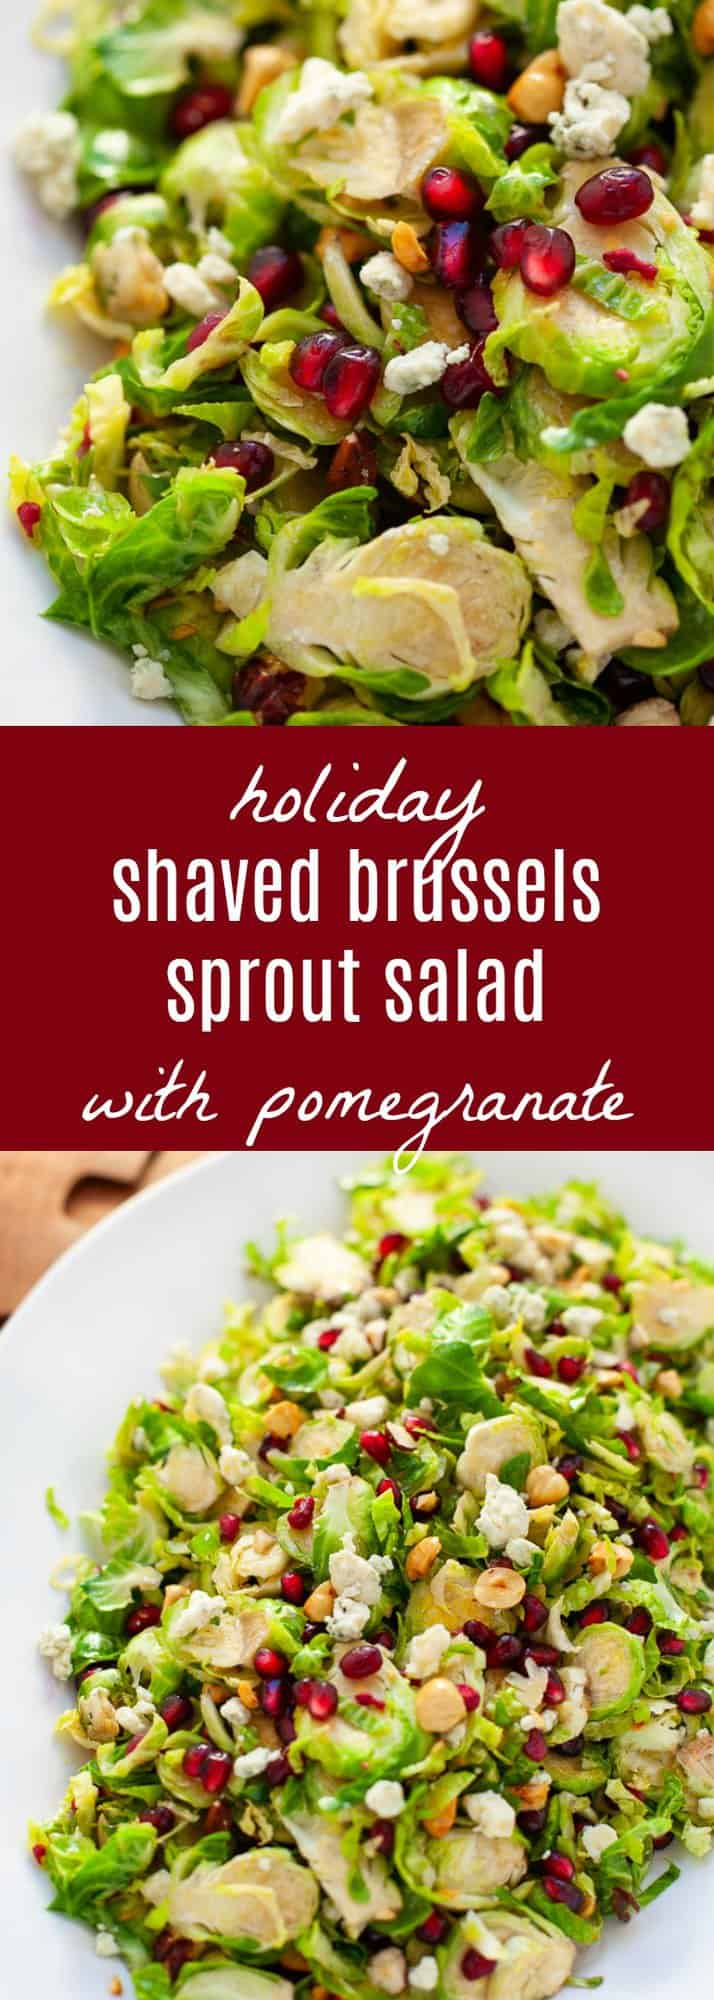 Looking for a festive salad to serve up this holiday season? You and your guests will love my easy and delicious shaved Brussels sprout salad with pomegranate with a citrus vinaigrette.#holiday #salad